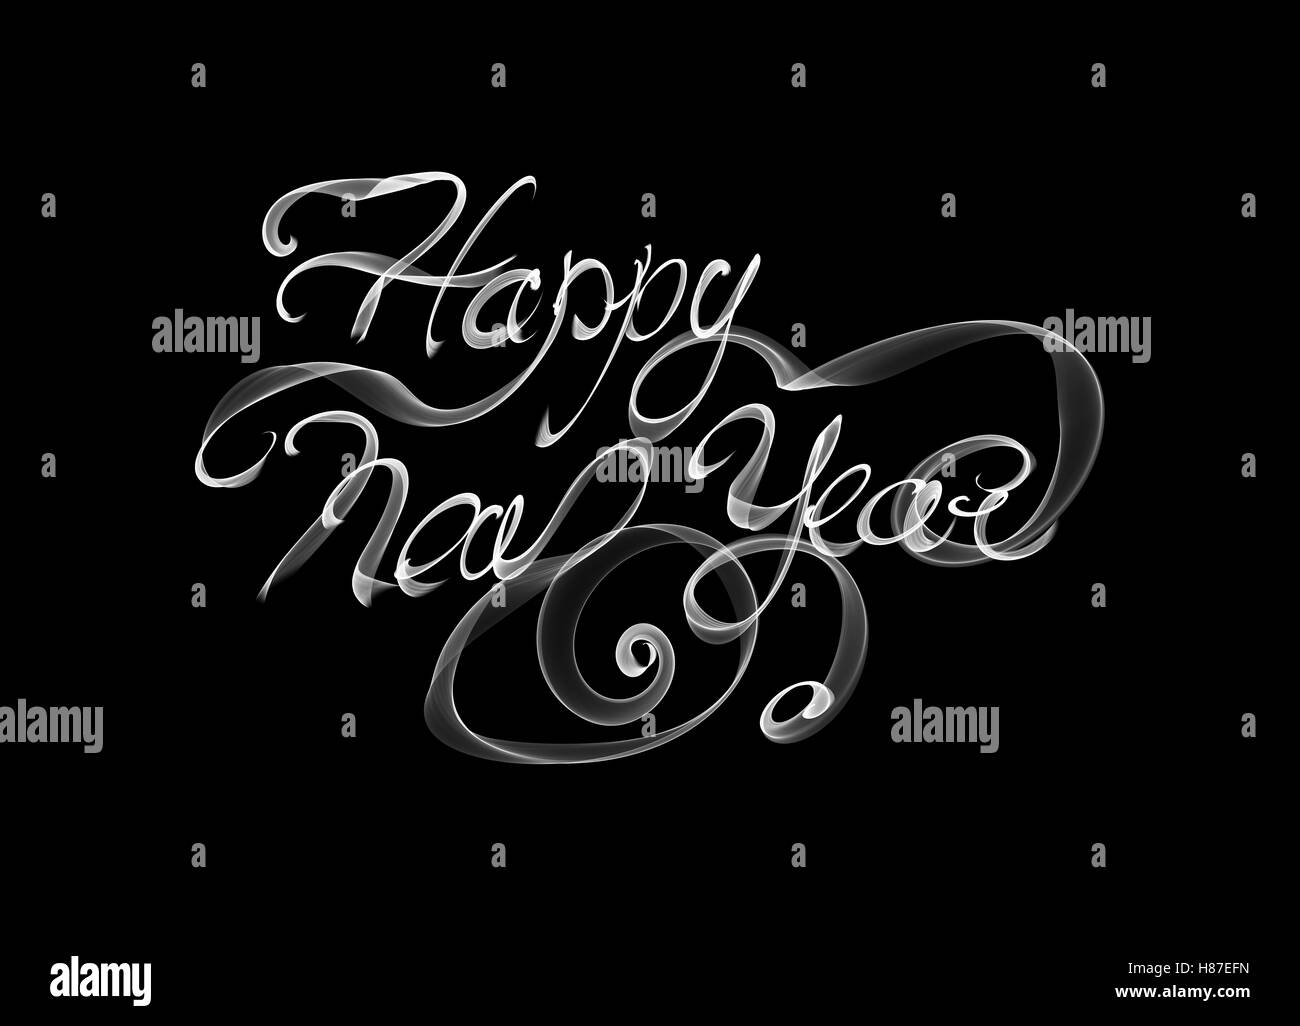 happy new year isolated words written with white flame or smoke on black background